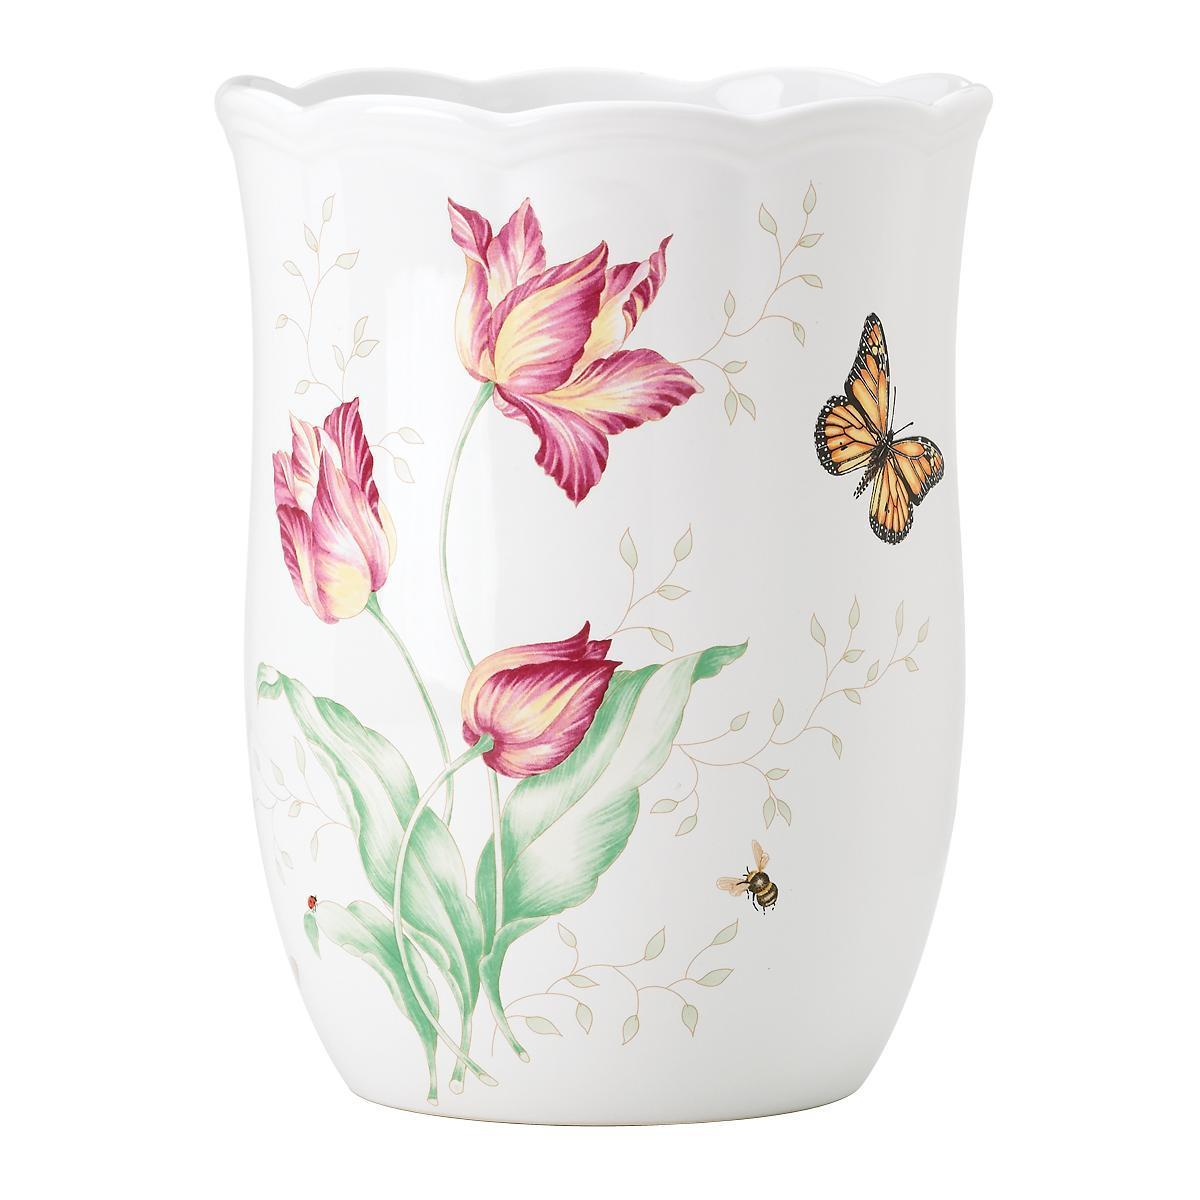 Lenox butterfly meadow waste basket free shipping today lenox butterfly meadow waste basket free shipping today overstock 19024431 reviewsmspy